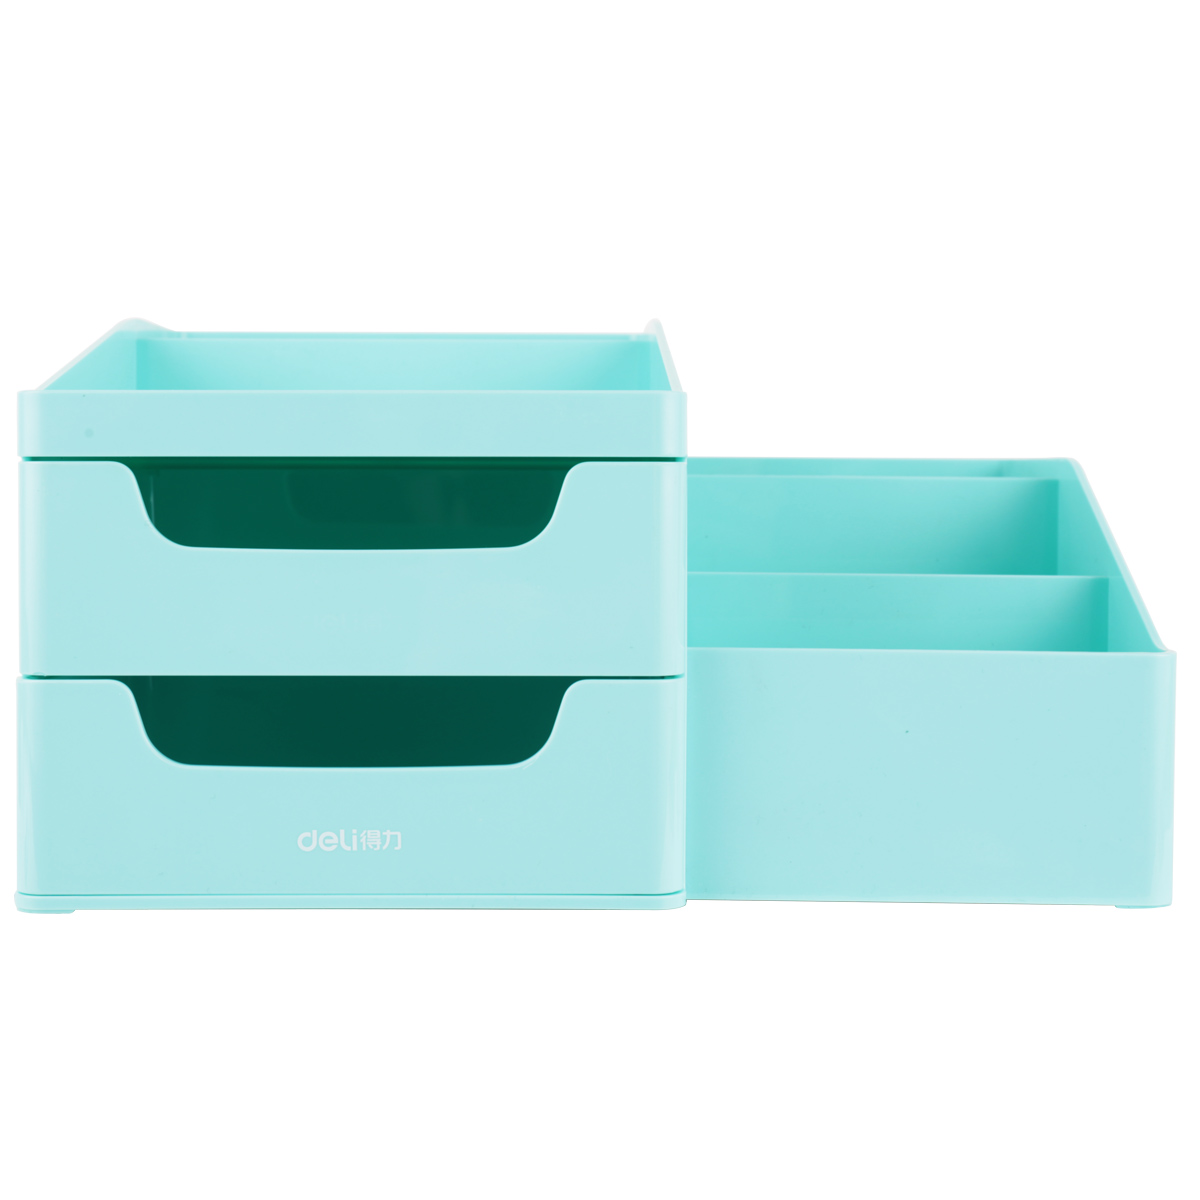 Deli 8900 stationery storage box storage box desktop storage box stationery pen